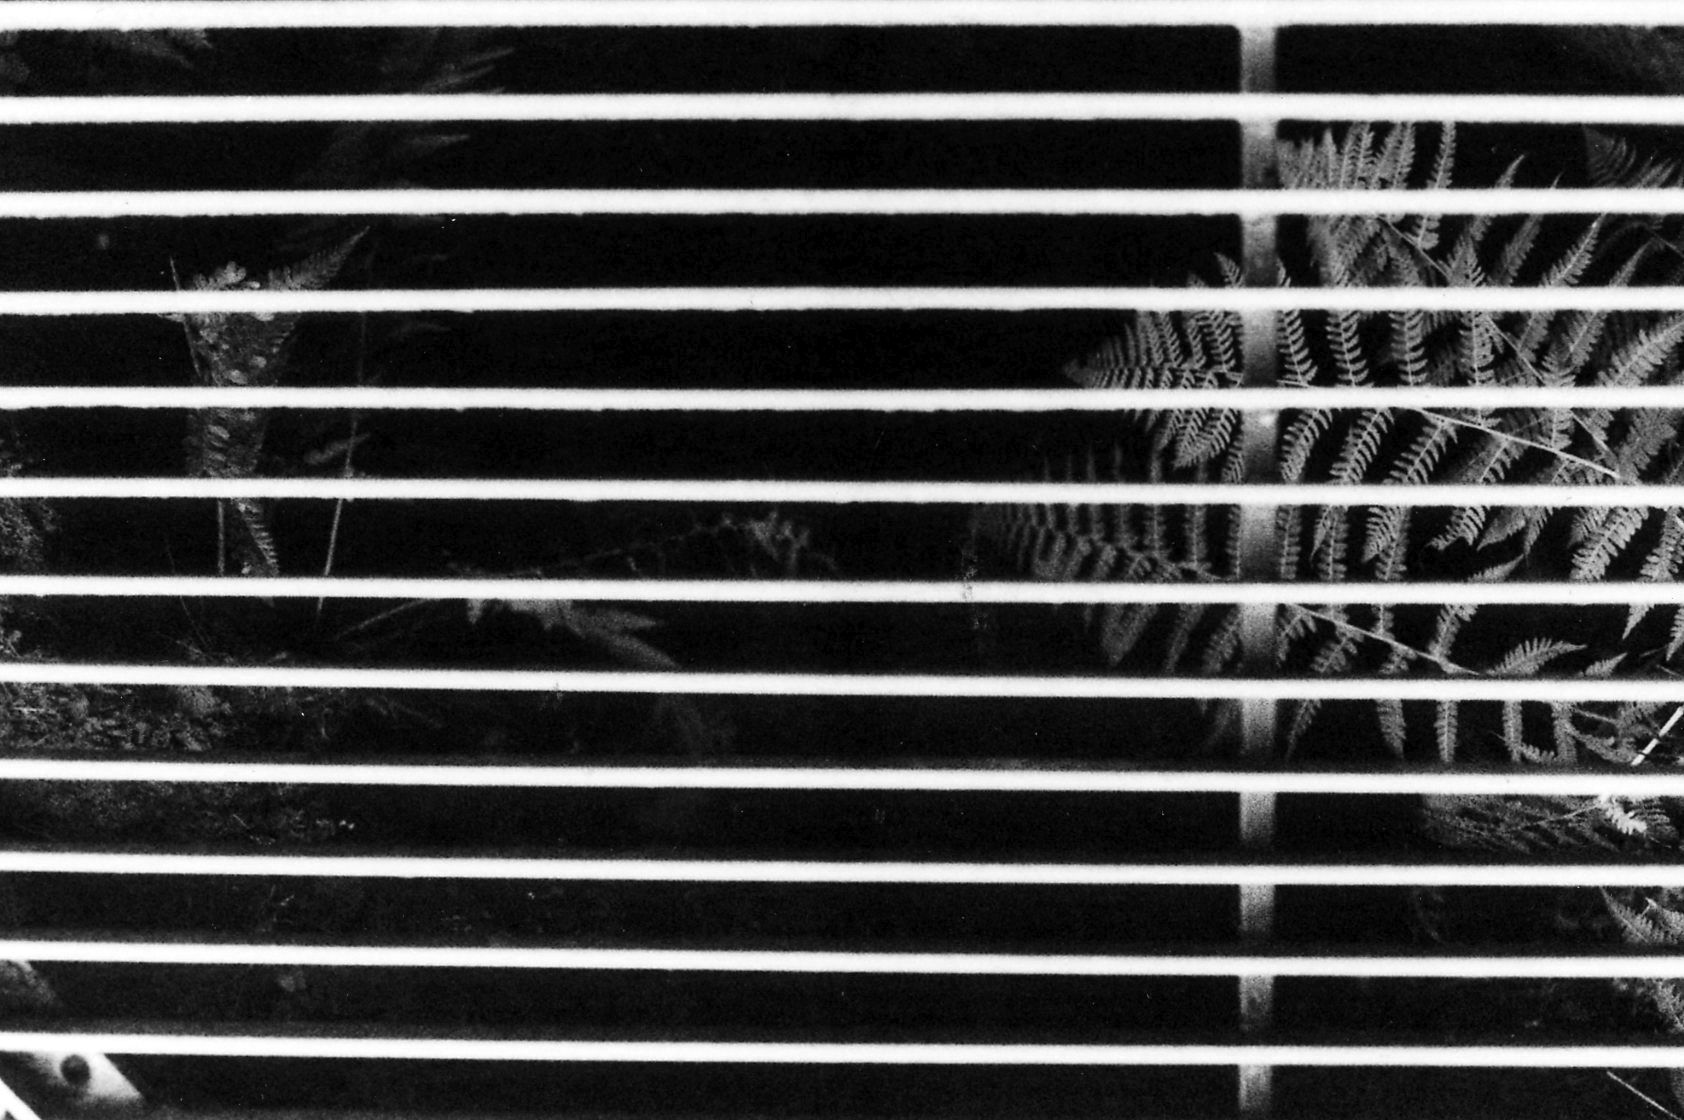 White lit gutter forming horizontal stripes on a dark background. Fern is under the gutter on the right, other plants on the left.